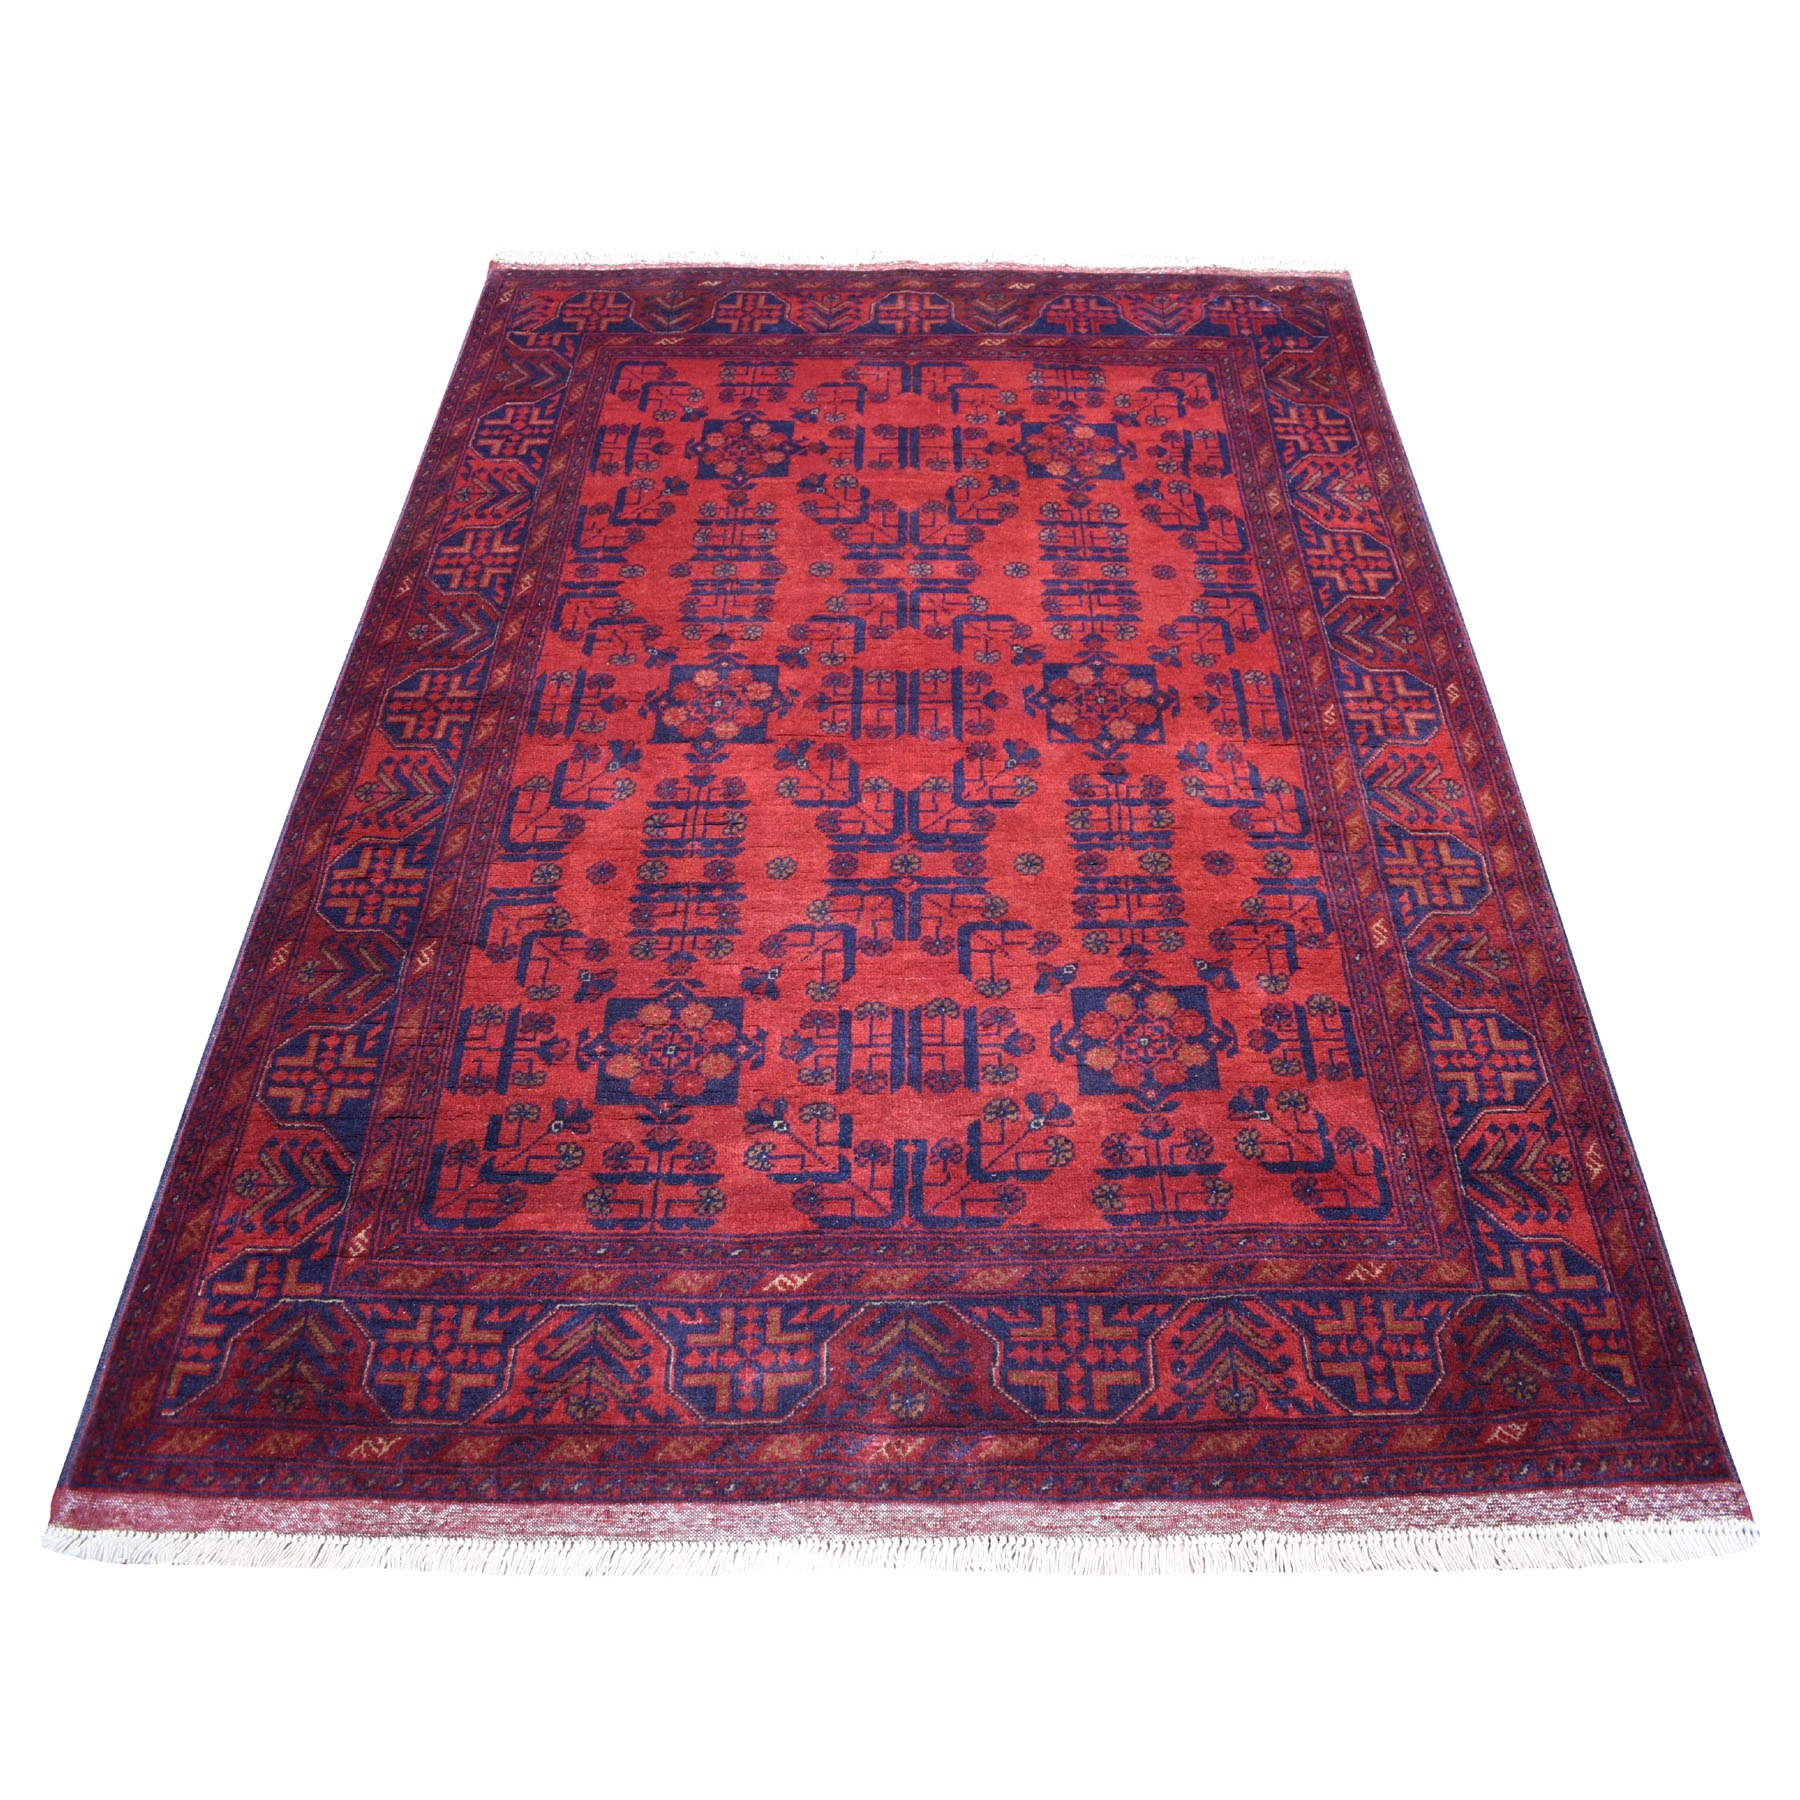 """4'9""""x6'5"""" Deep and Saturated Red Tribal Design Afghan Andkhoy Pure Wool Hand-Knotted Oriental Rug 53401"""